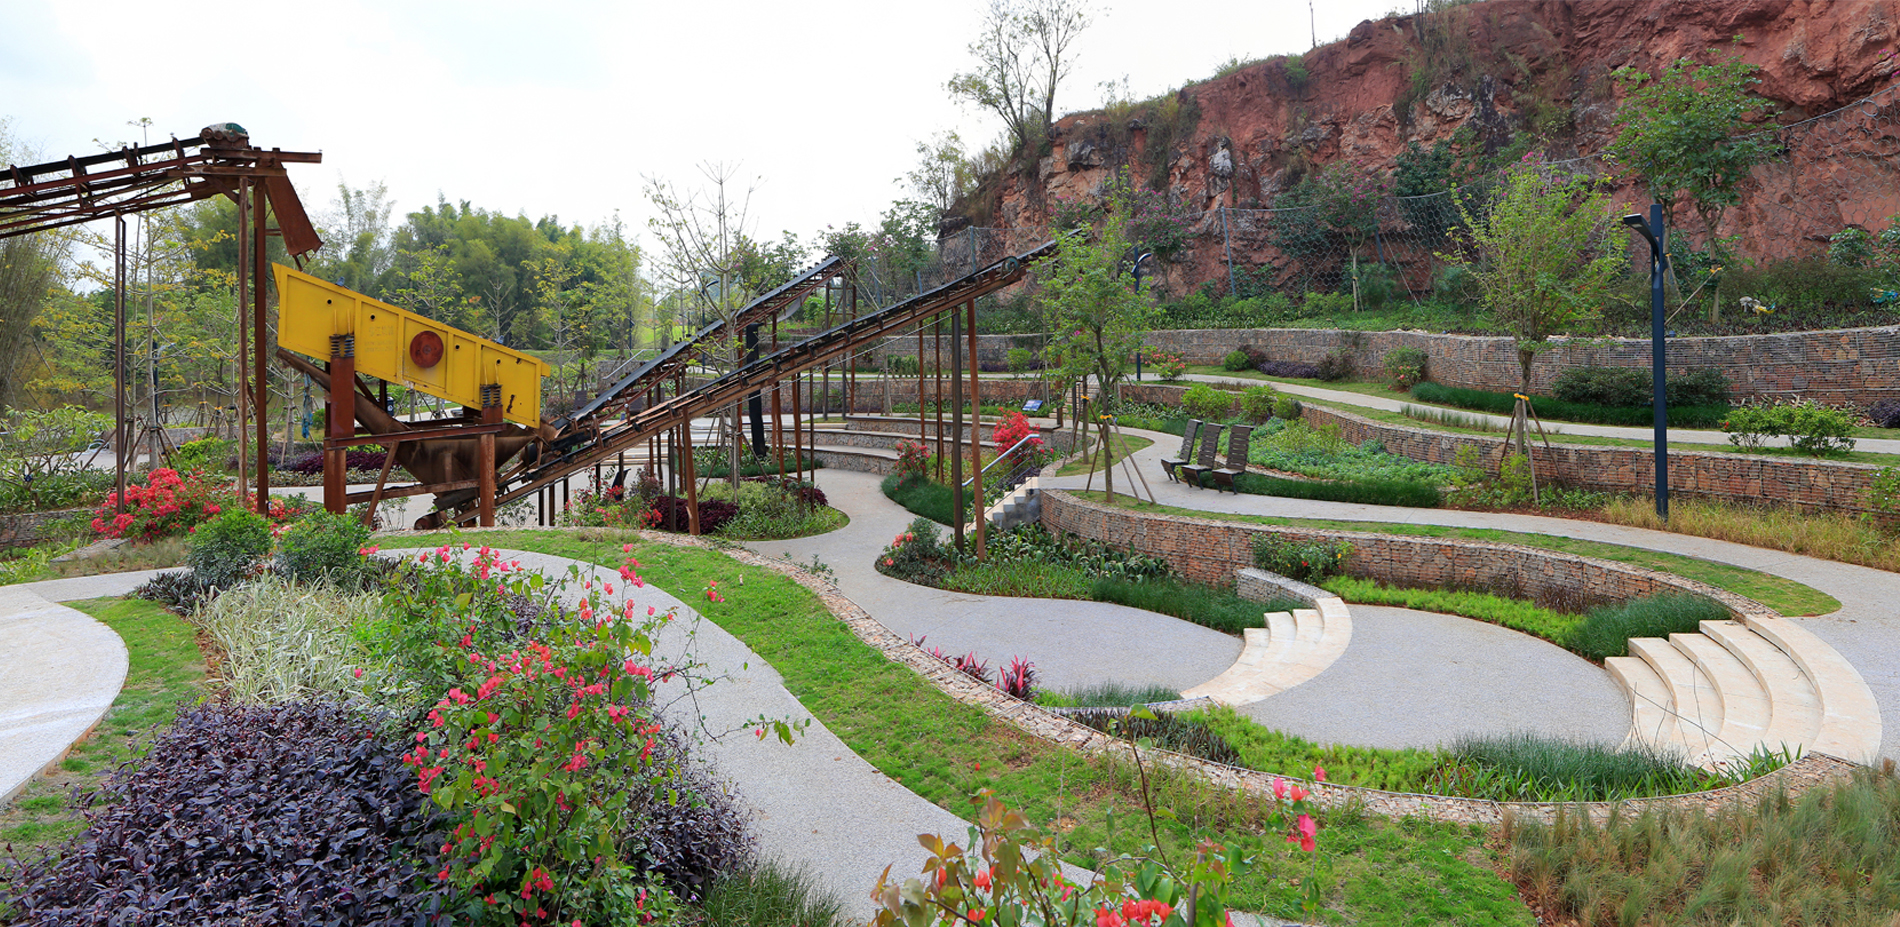 A Terrace Garden with Preserved Mining Machinery (Quarry No. 6)